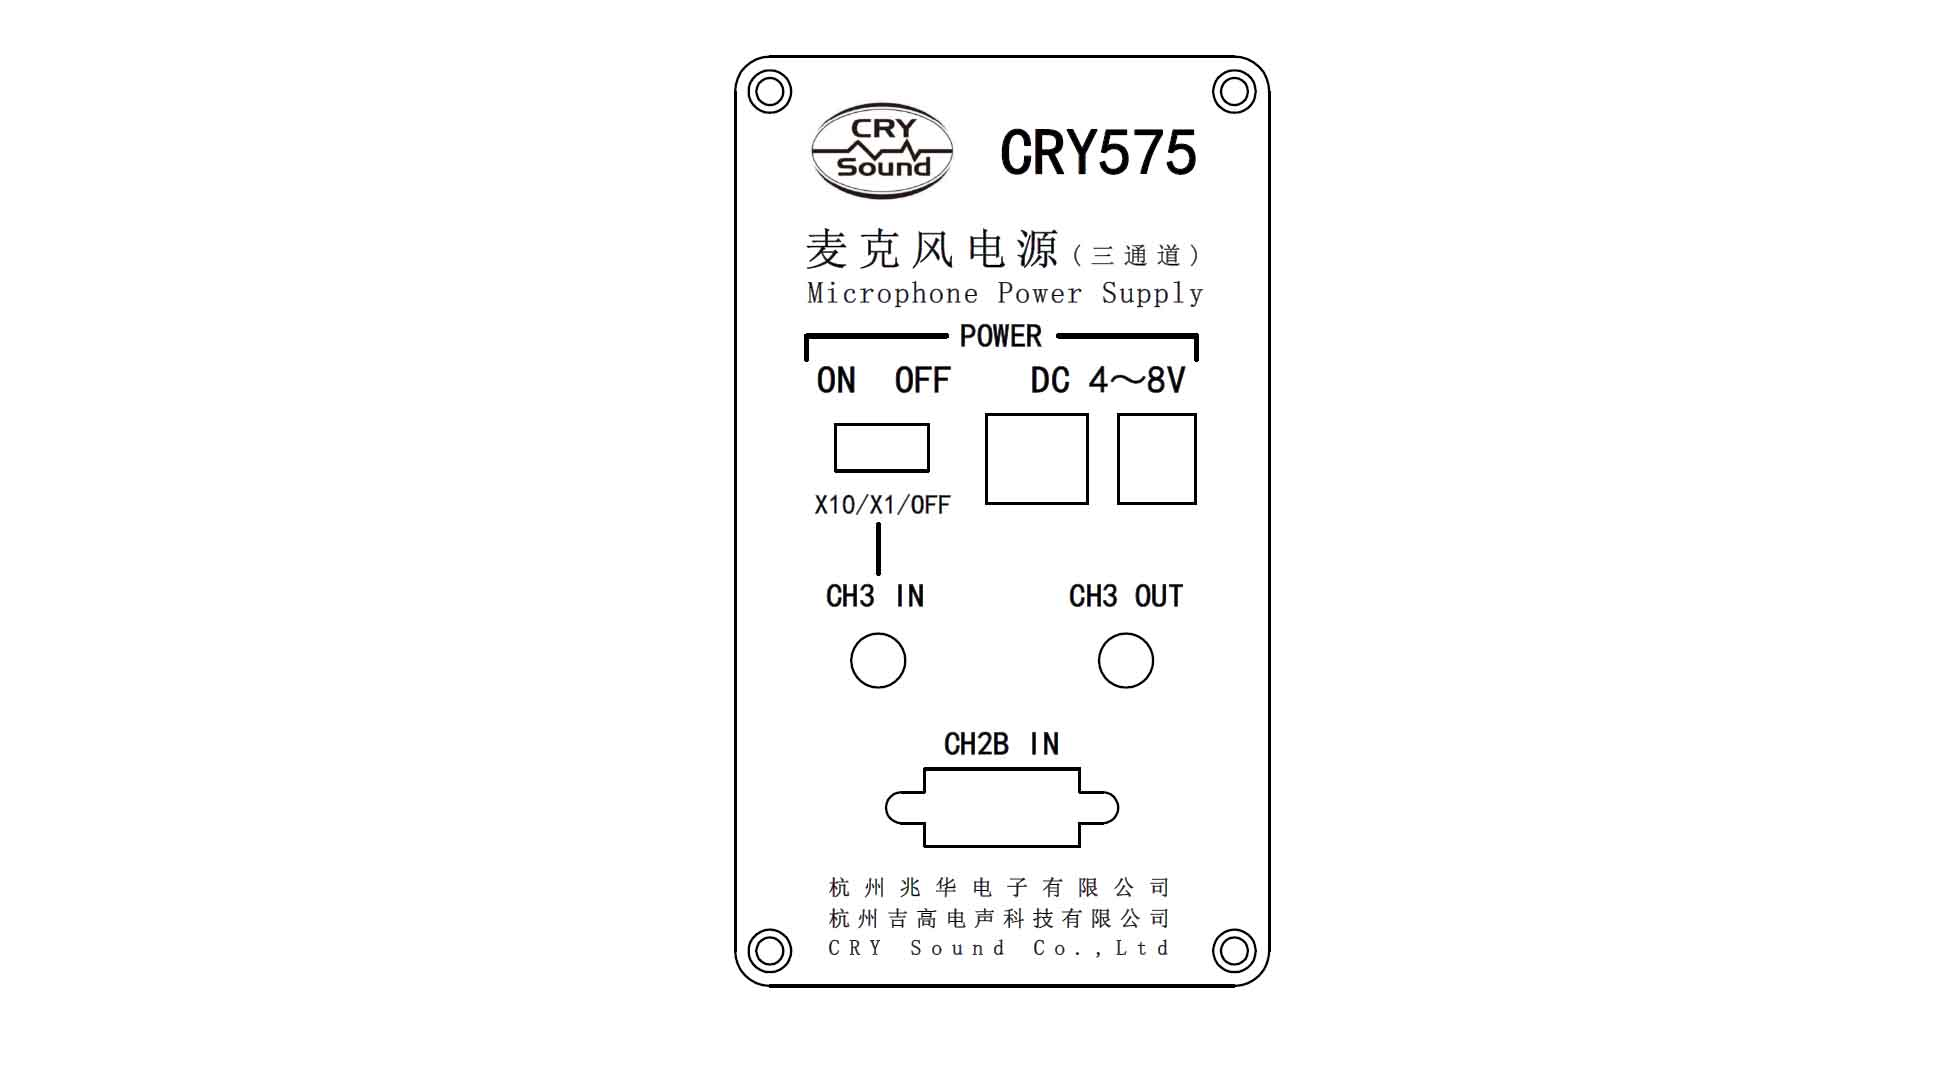 CRY575 Rear Panel